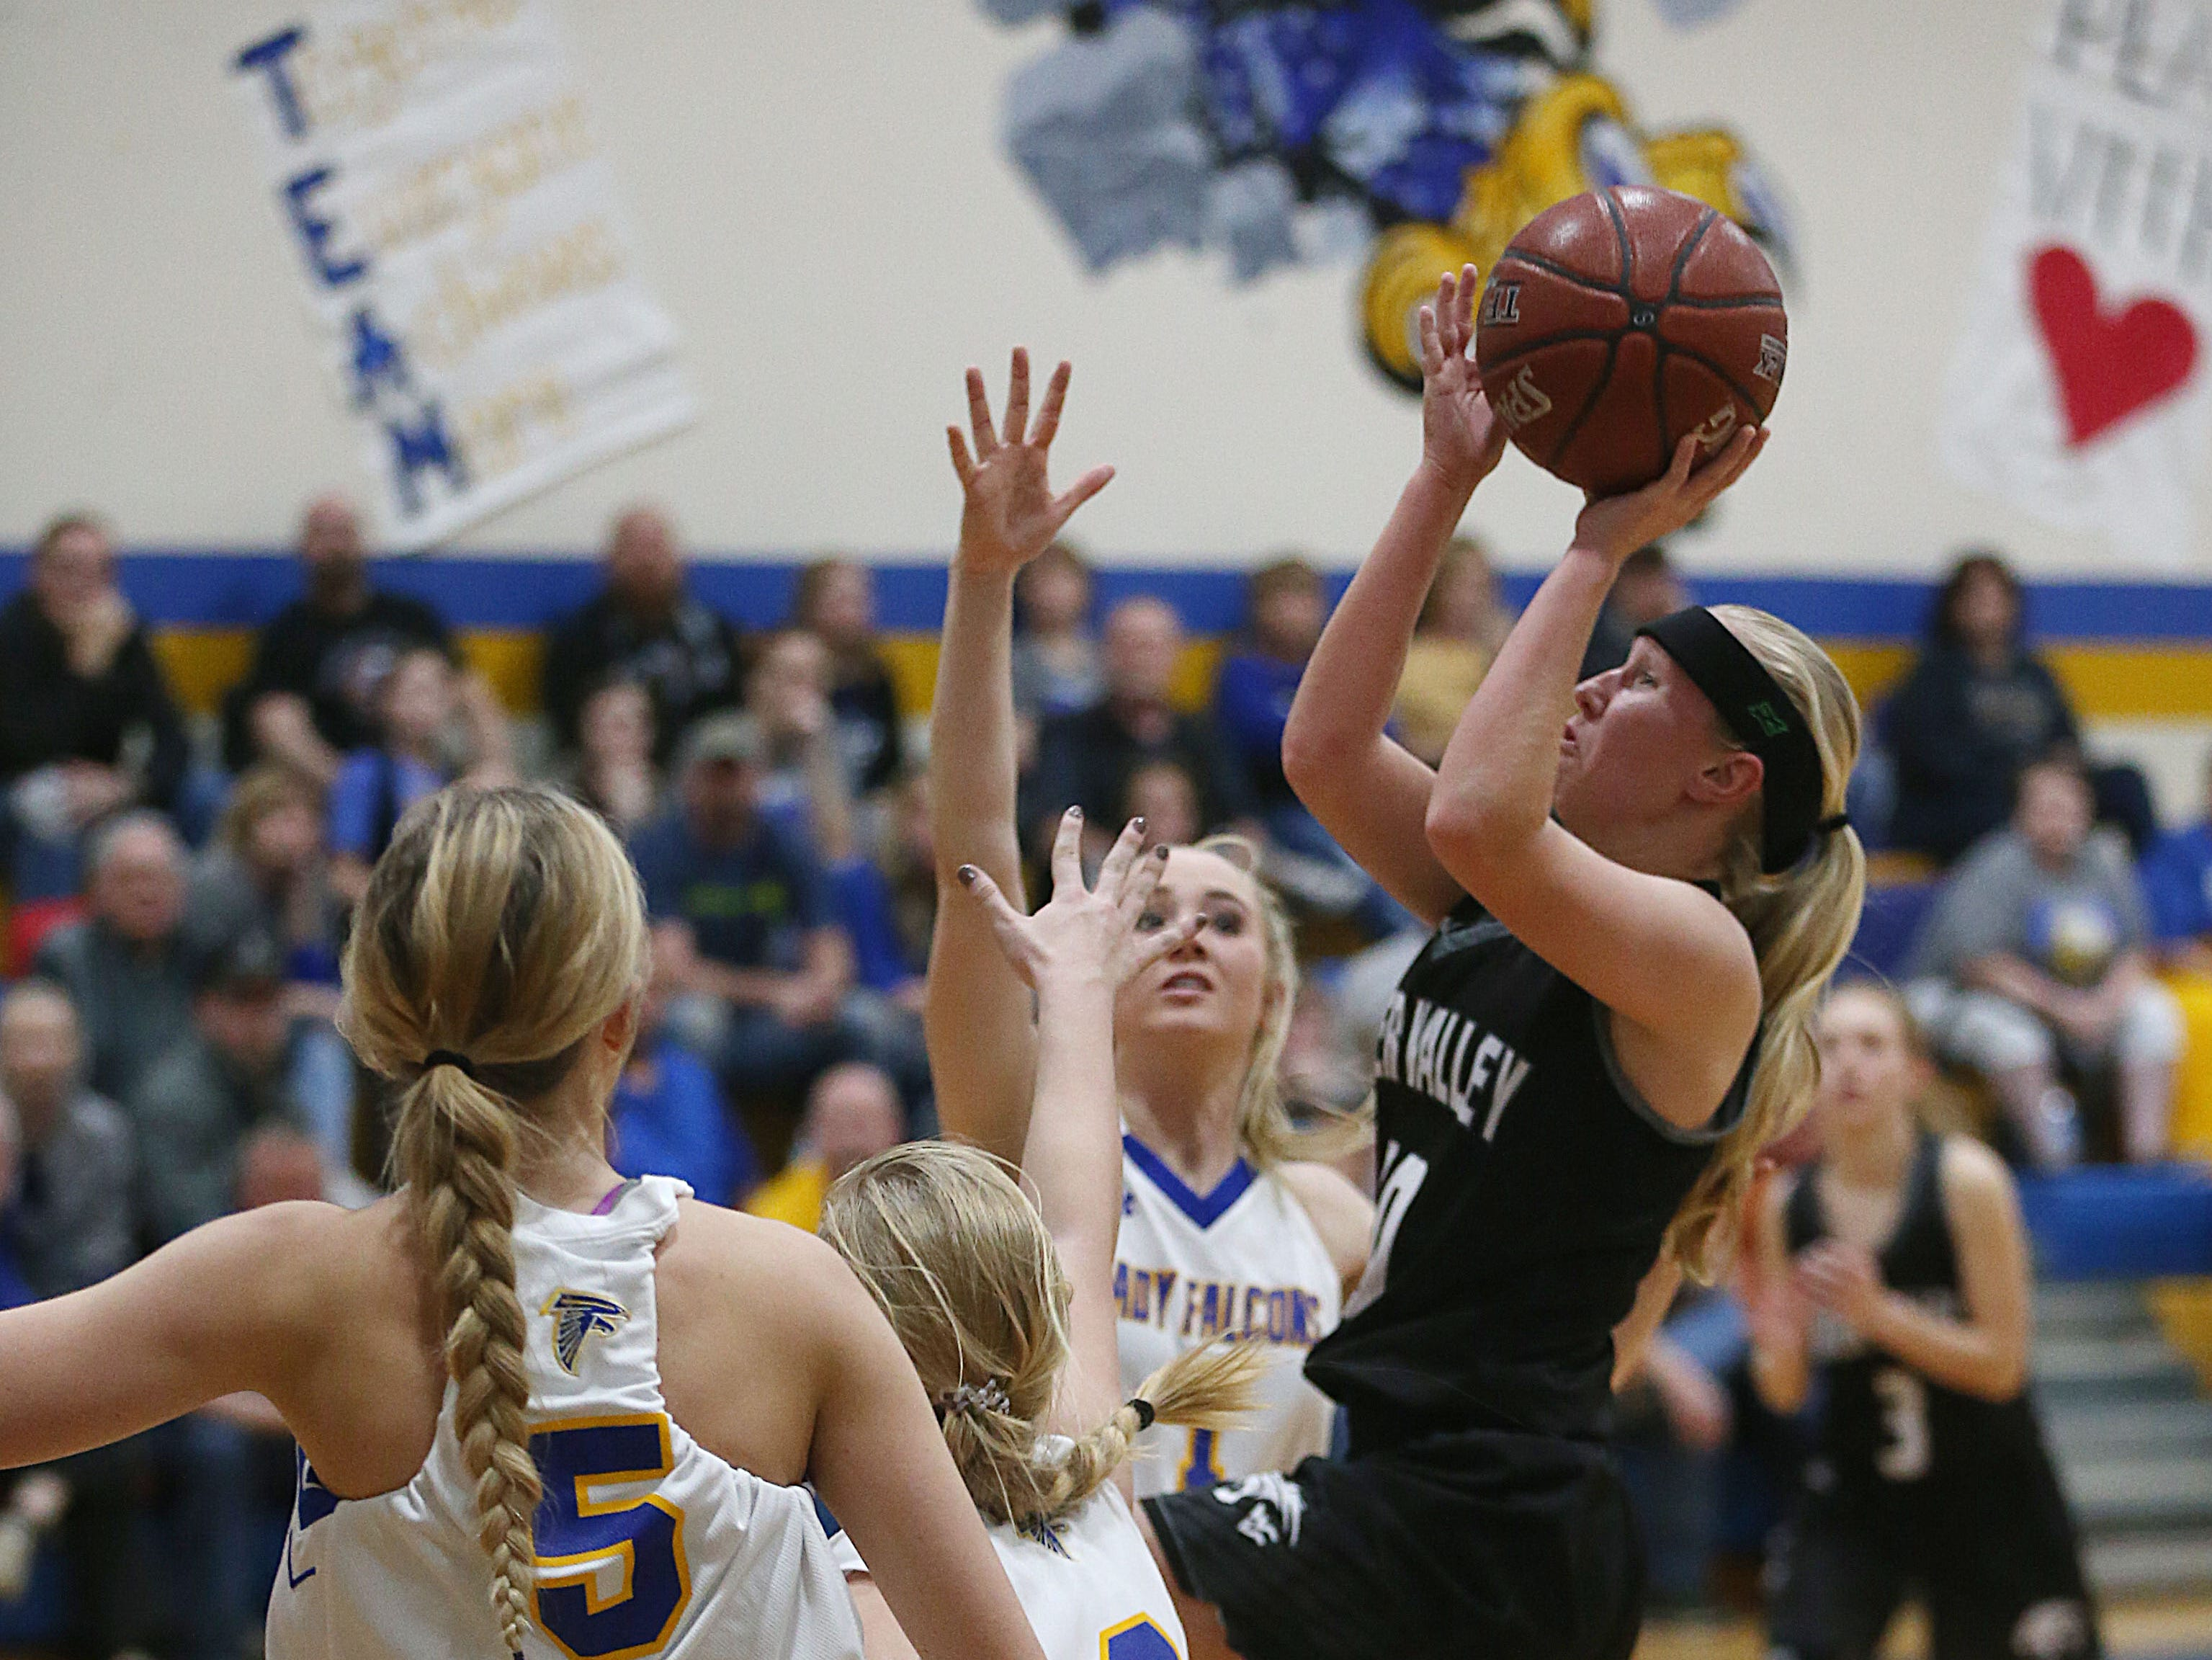 Water Valley's Brittany Sutton (#10) jumps in the air for a shot Tuesday, Jan. 8, 2019 during the game against Veribest.